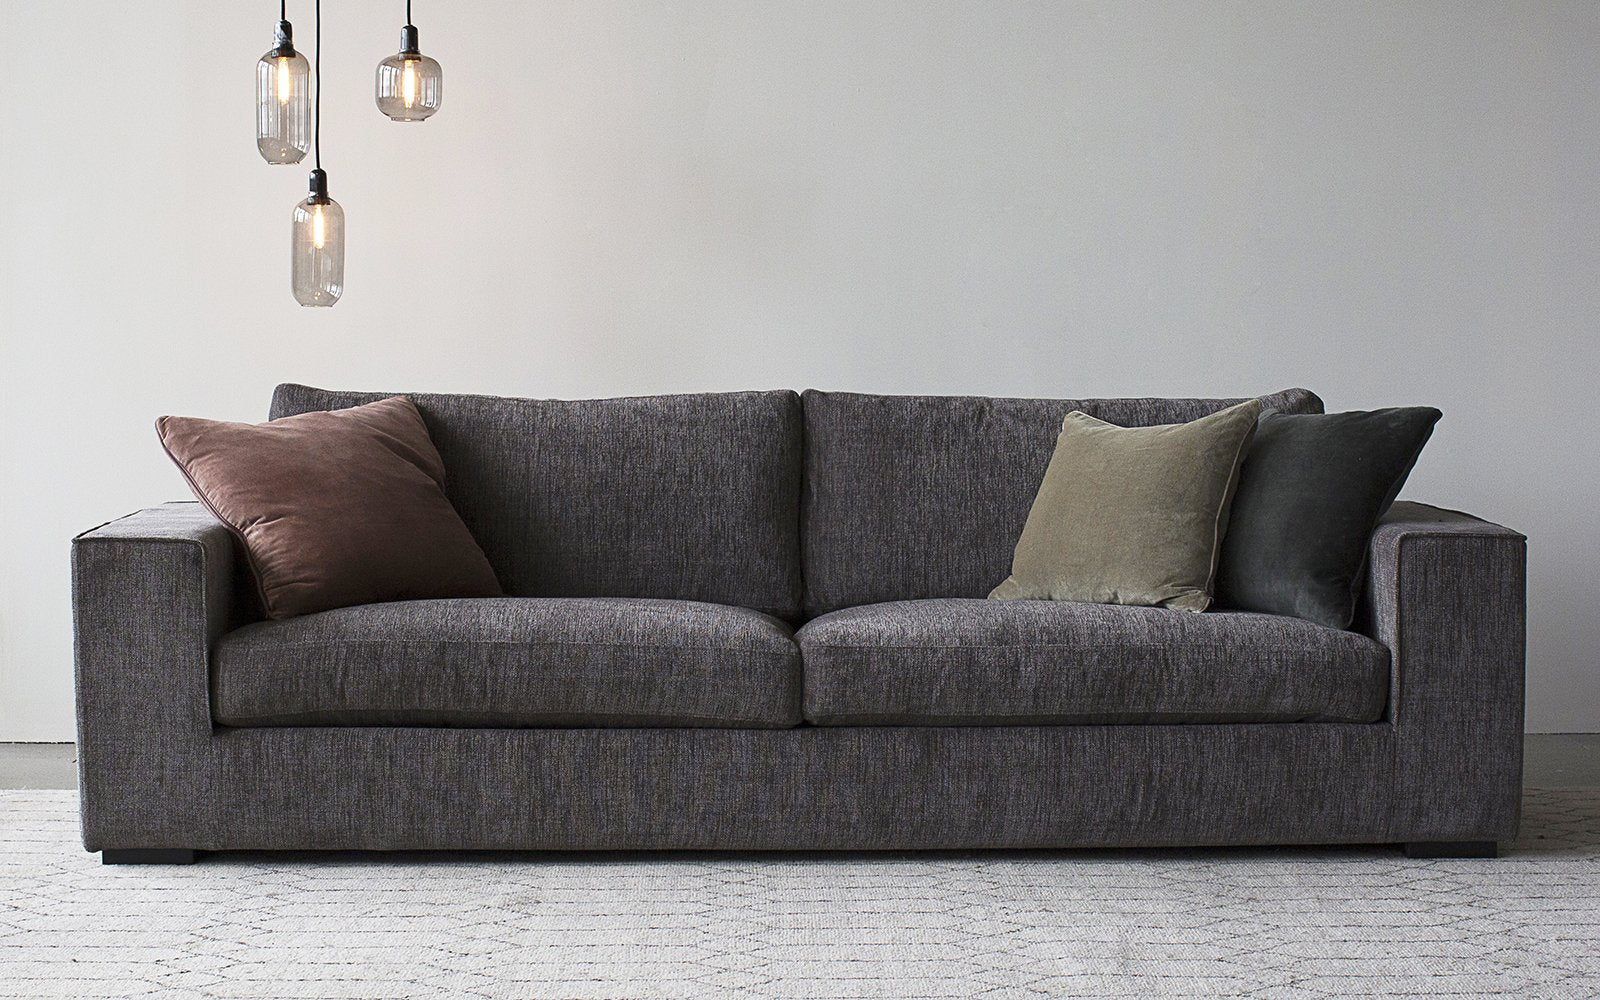 Love Sofas. Romance. Embrace. Love.